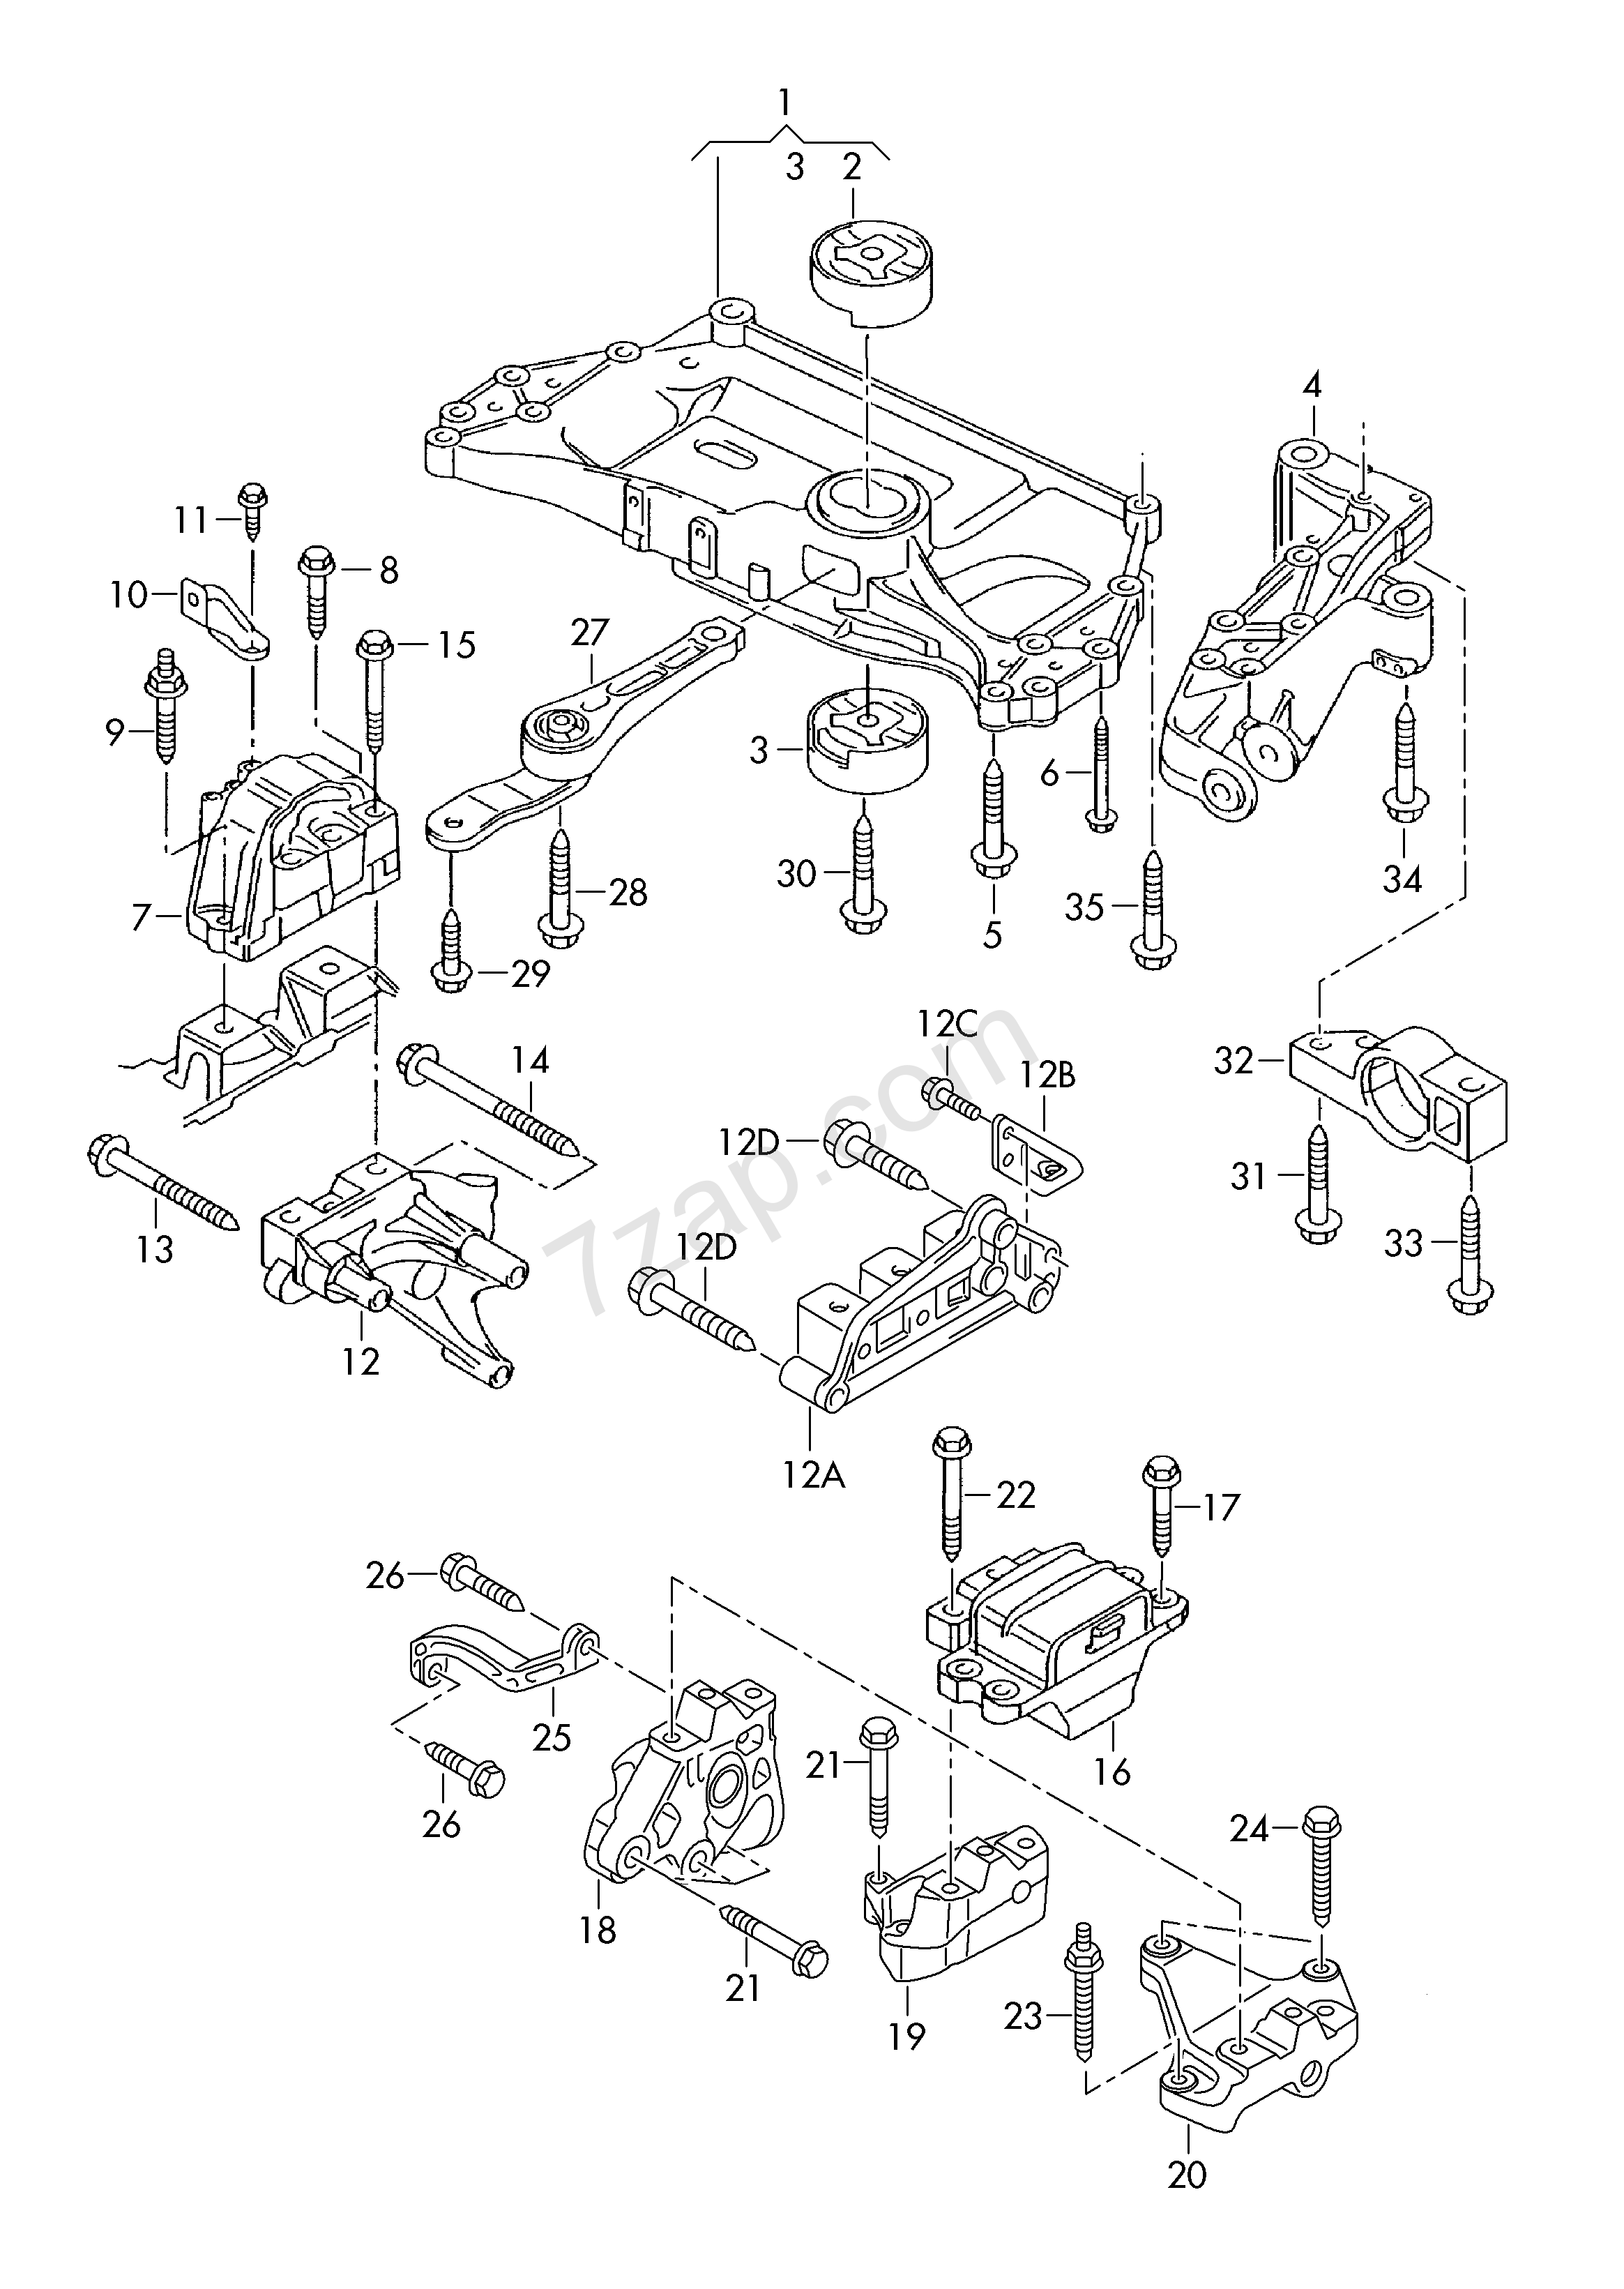 vw engine mount diagram wiring library  mounting parts for engine and transmission touran tou europa 2014 year